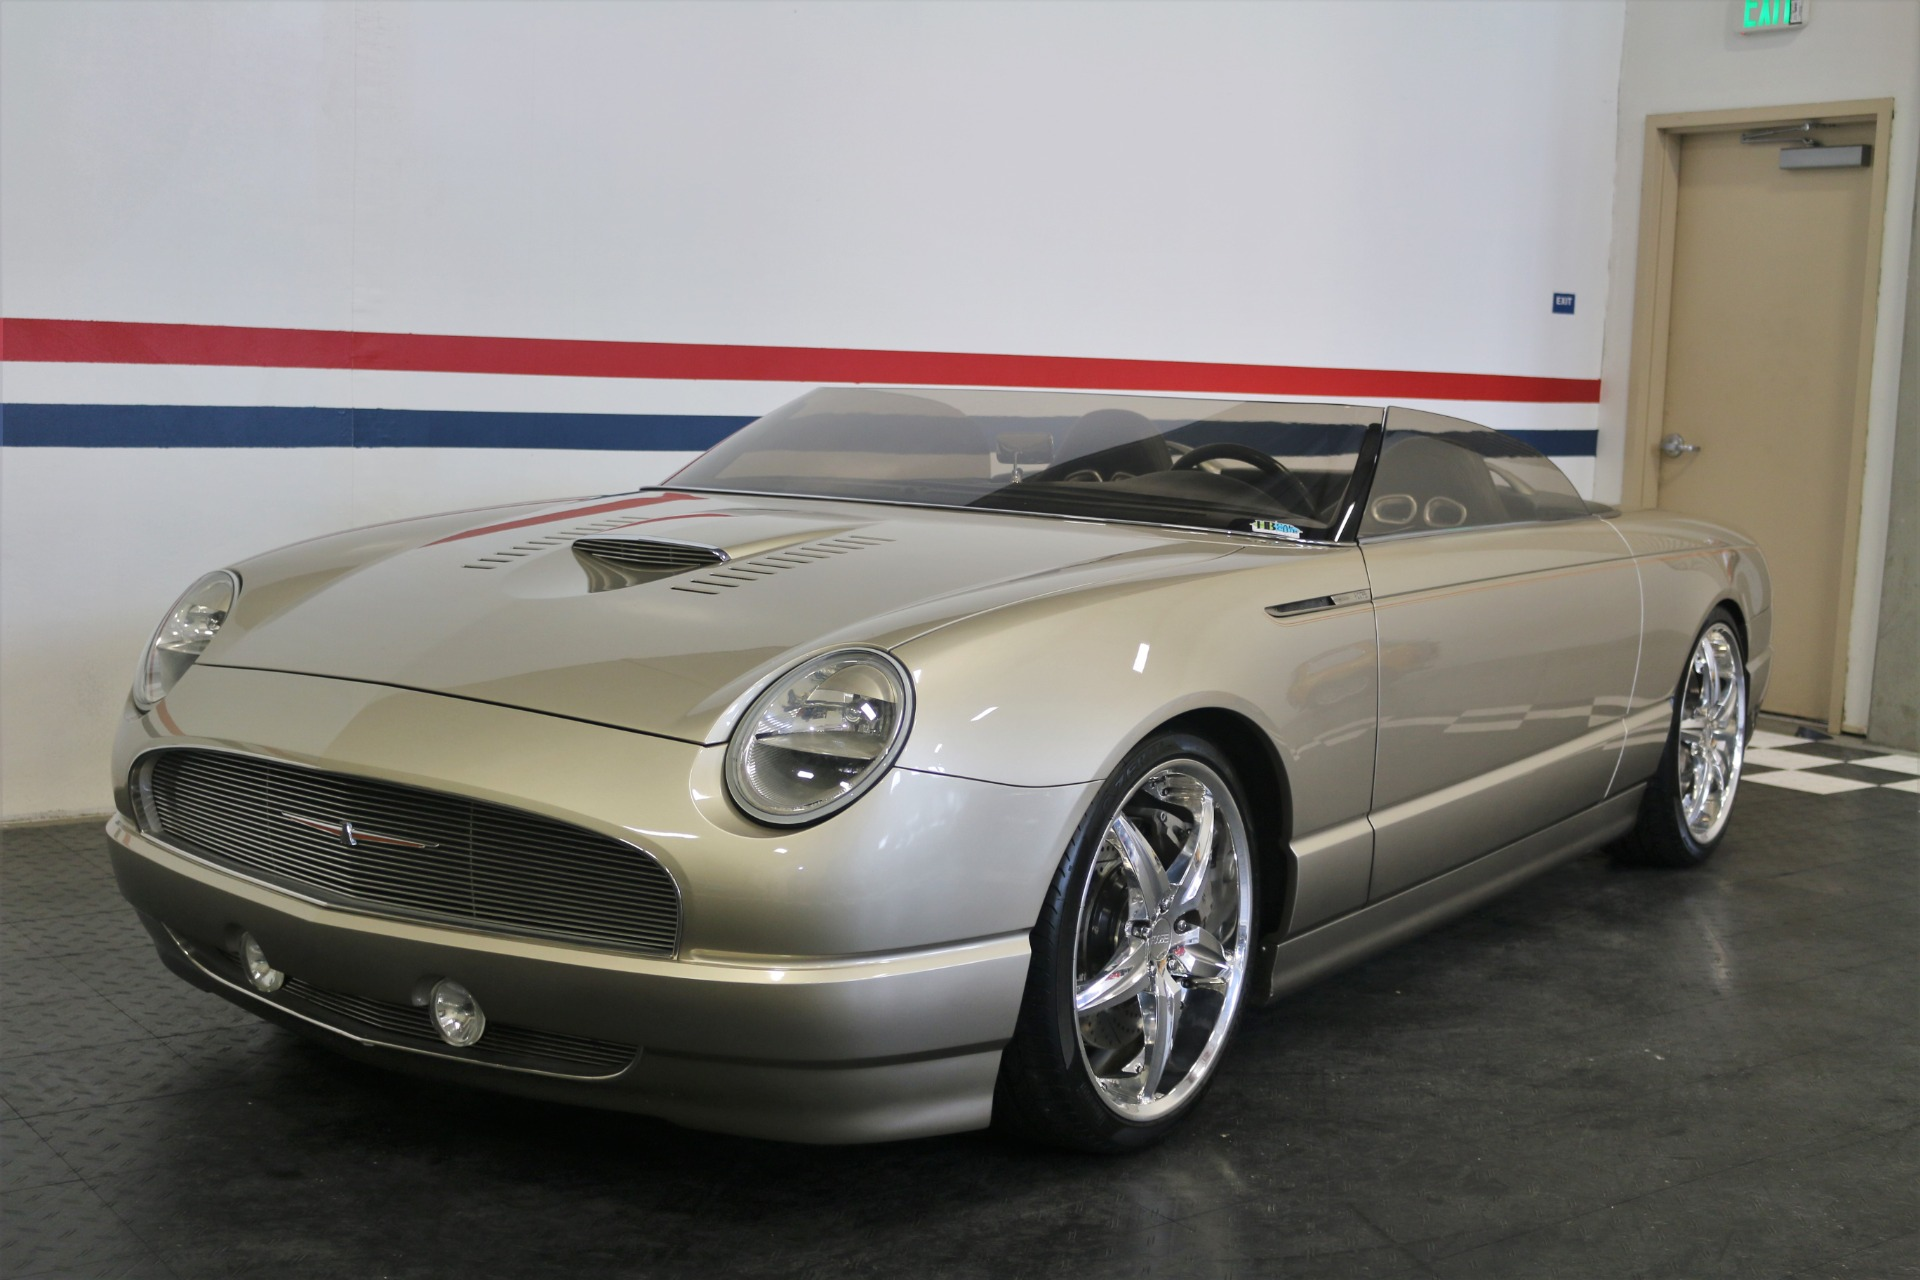 Used-2002-Ford-Chip-Foose-Speedbird